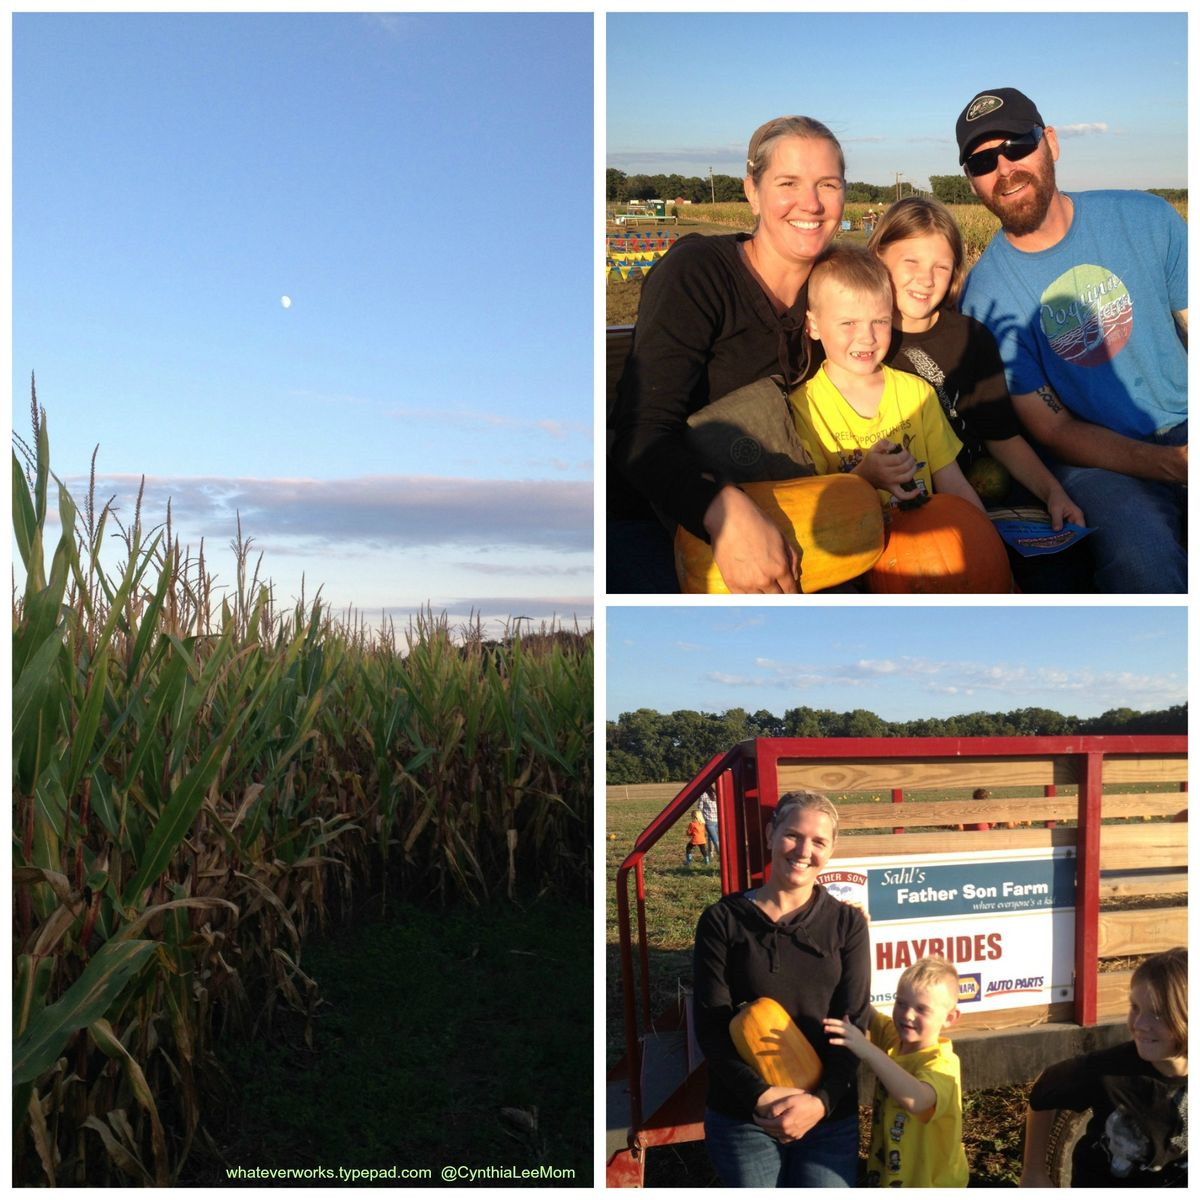 Sahl S Father Son Farm In Egg Harbor Nj Great Fall Time Family Fun Whatever Works